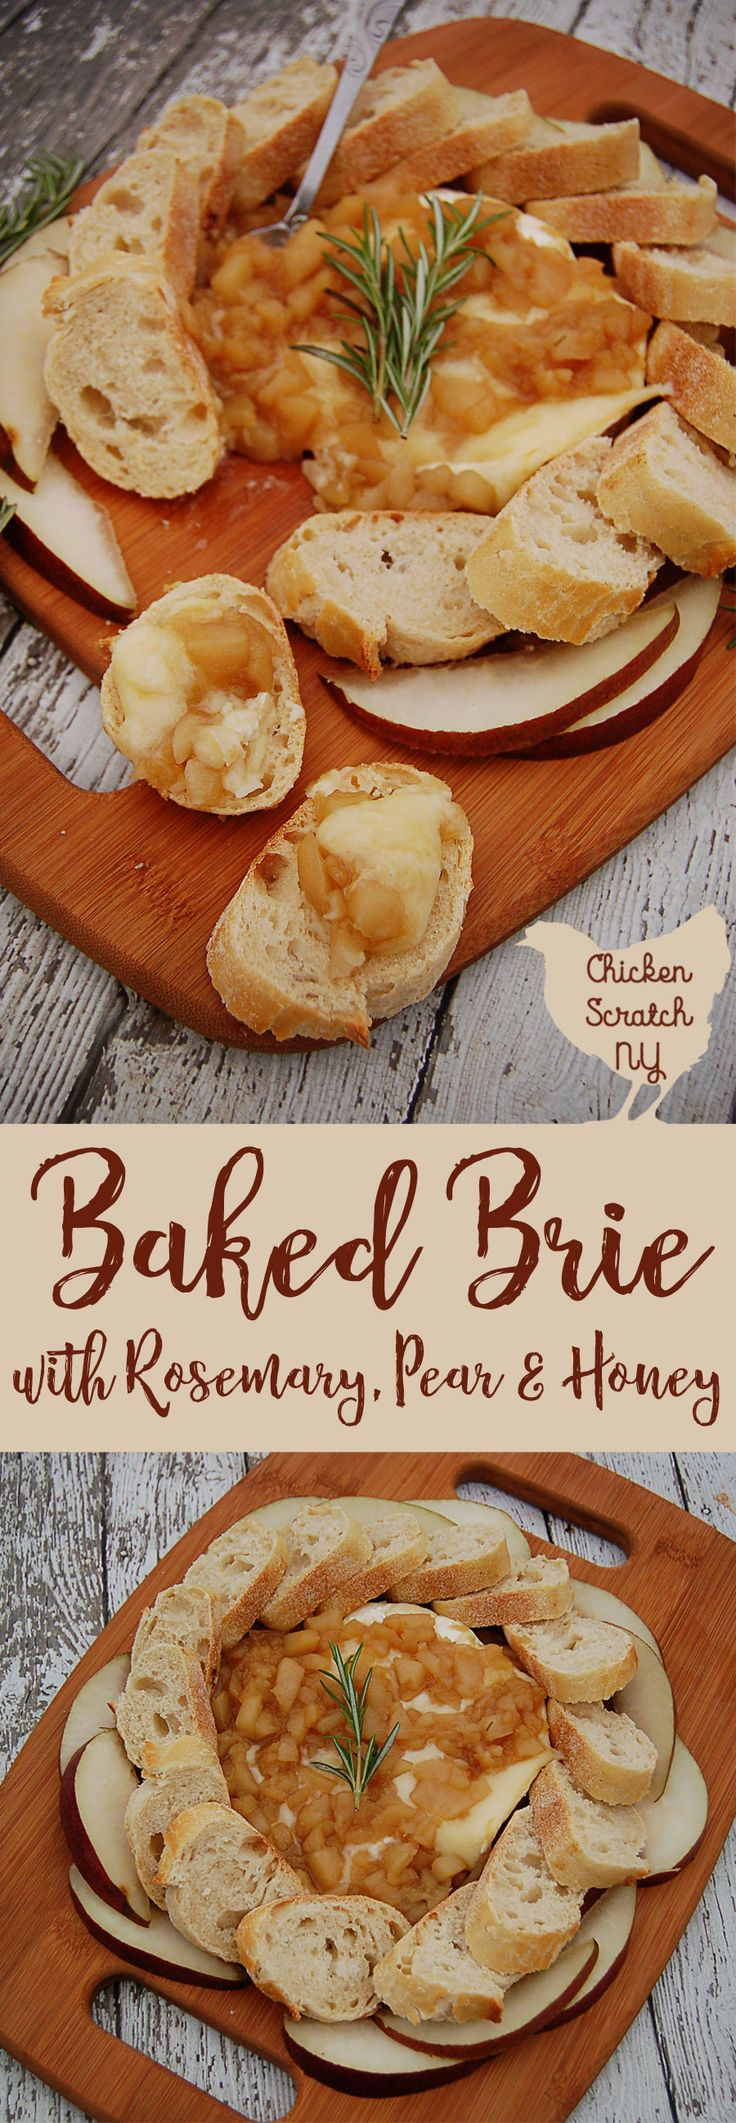 Top a round of warm baked brie with a chunky pear sauce made with fresh rosemary and honey. Serve with crusty bread or pear slices. via @AleciaCSNY